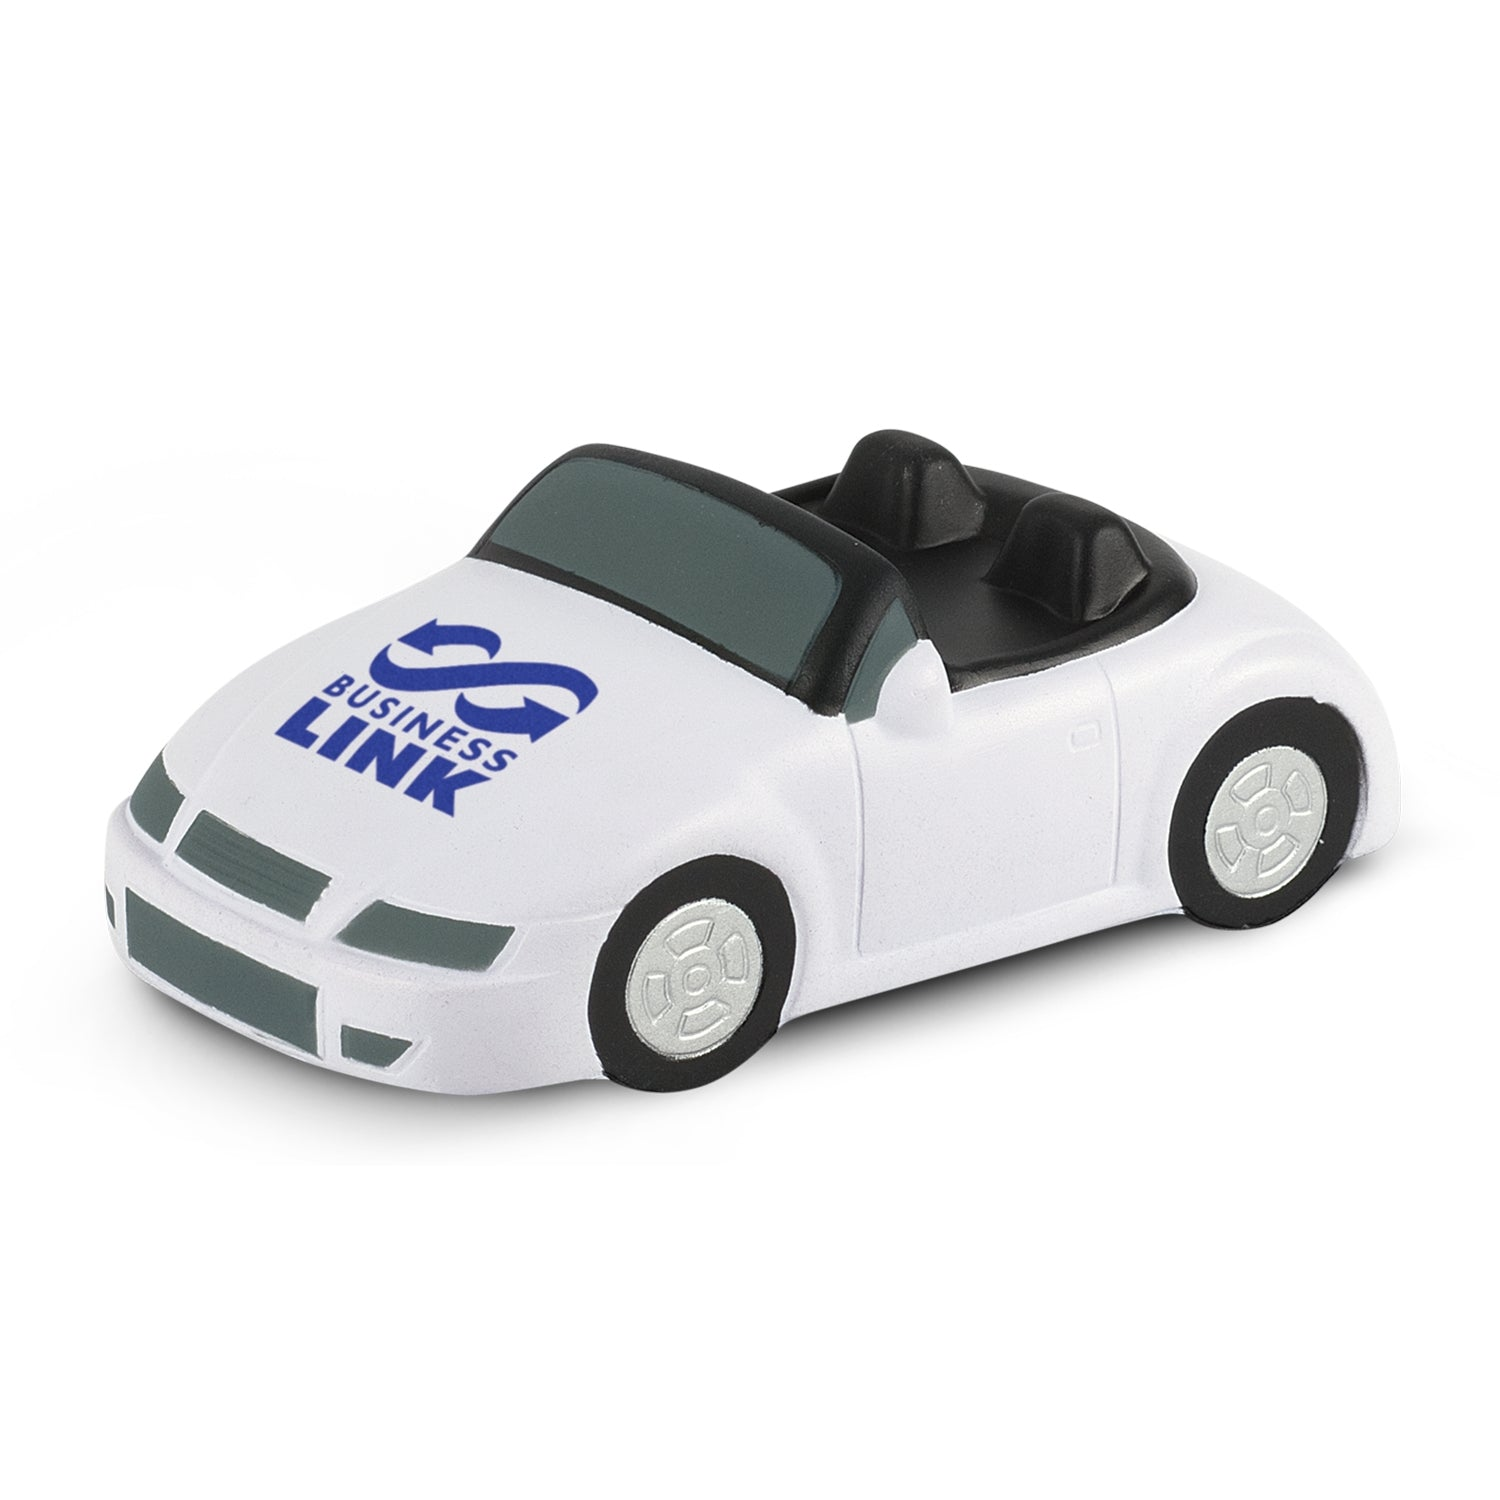 Stress Car(SSB-33T) - greenpac.com.au